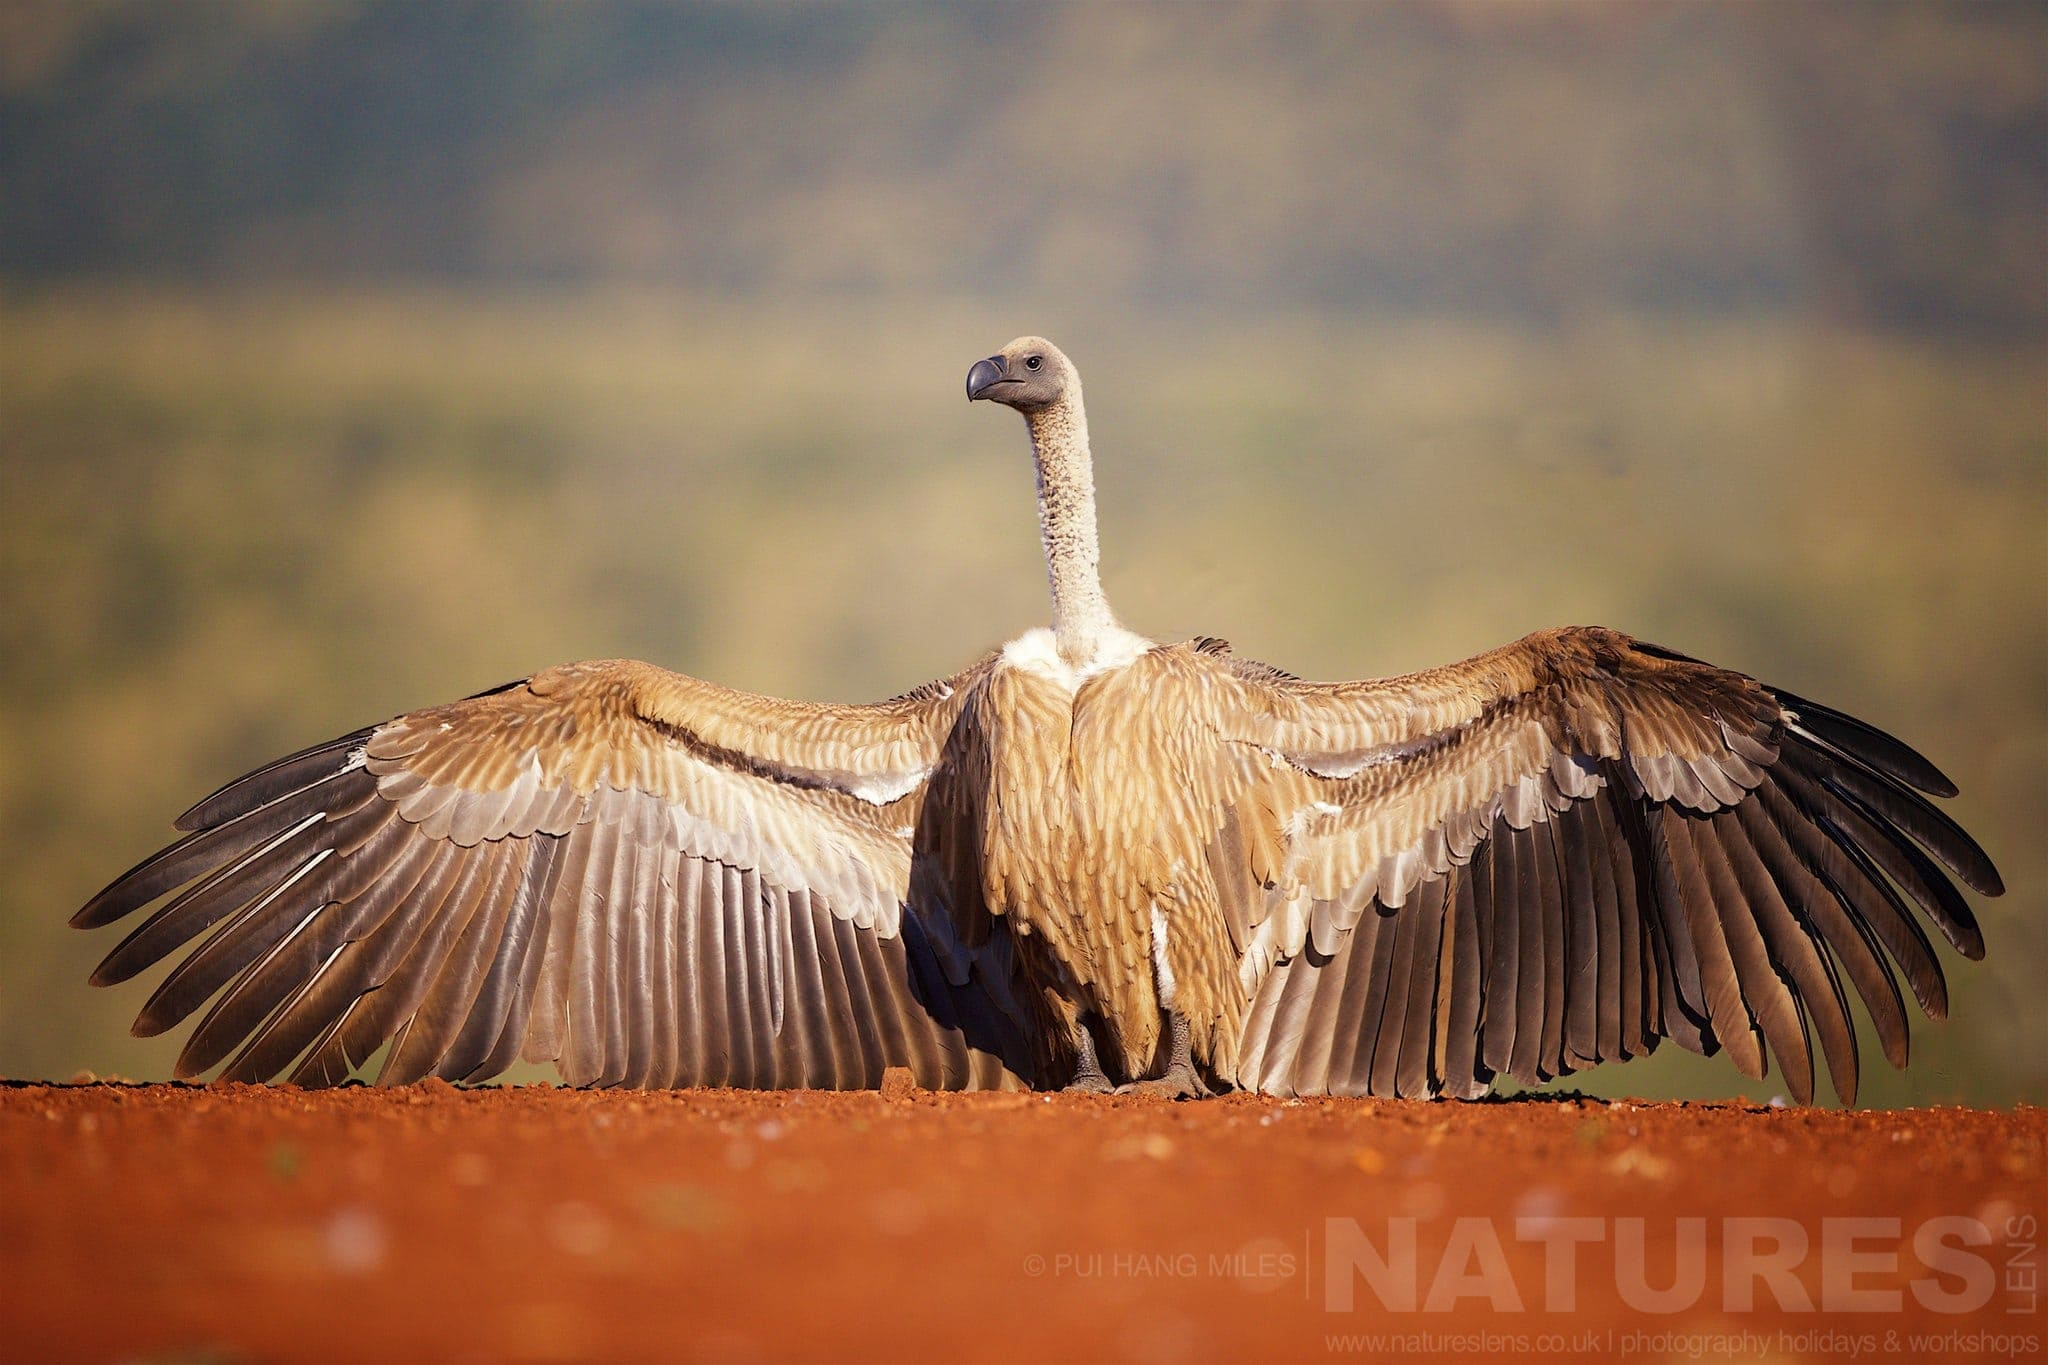 Vulture With Outstretched Wings   Captured During The Natureslens African Wildlife Zimanga Photography Holiday